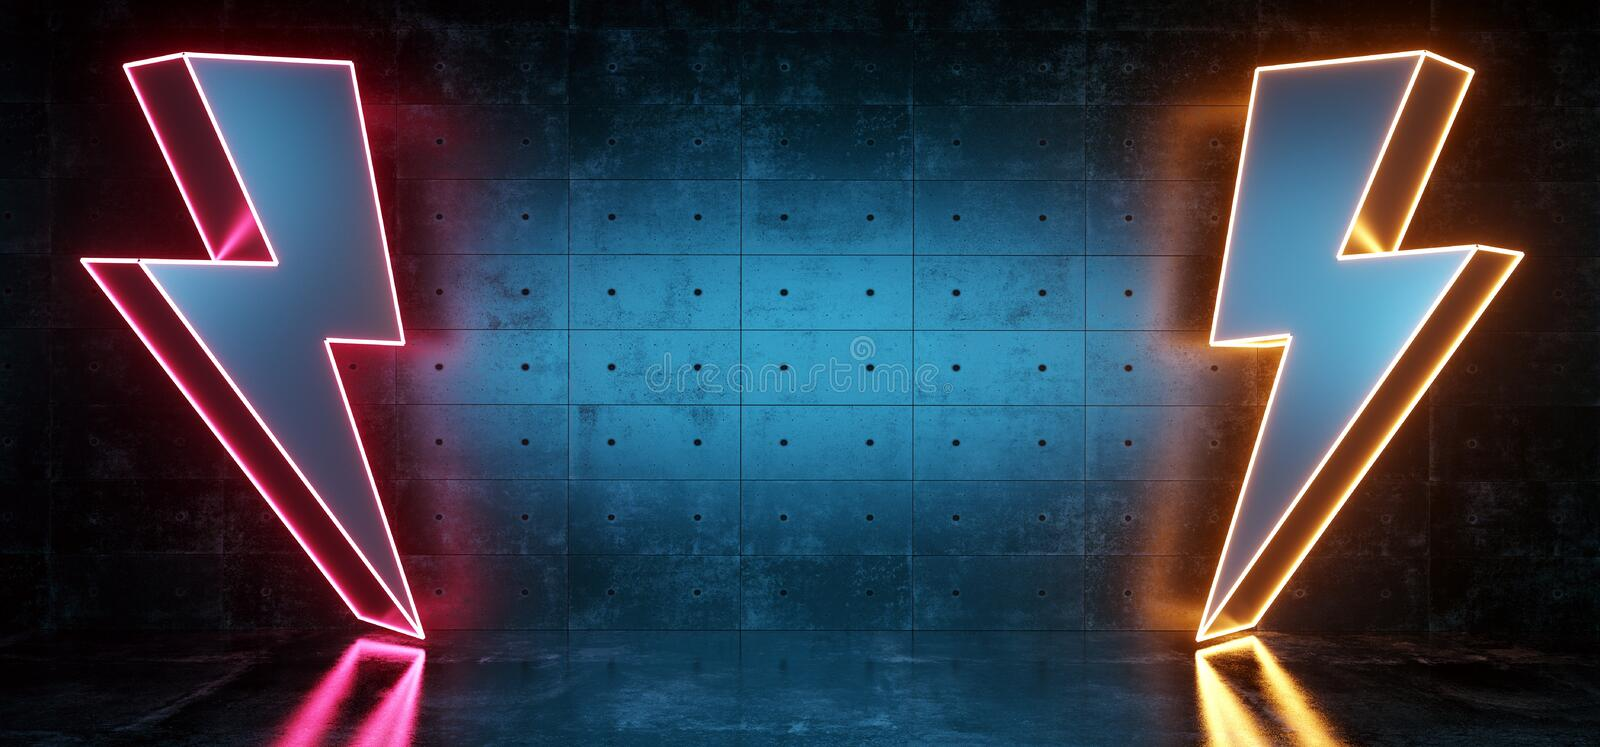 High Voltage Electric Neon Glowing Thunder Bolt Shapes Sci Fi Futuristic Modern Dark Background Grunge Concrete Room Empty Space stock illustration